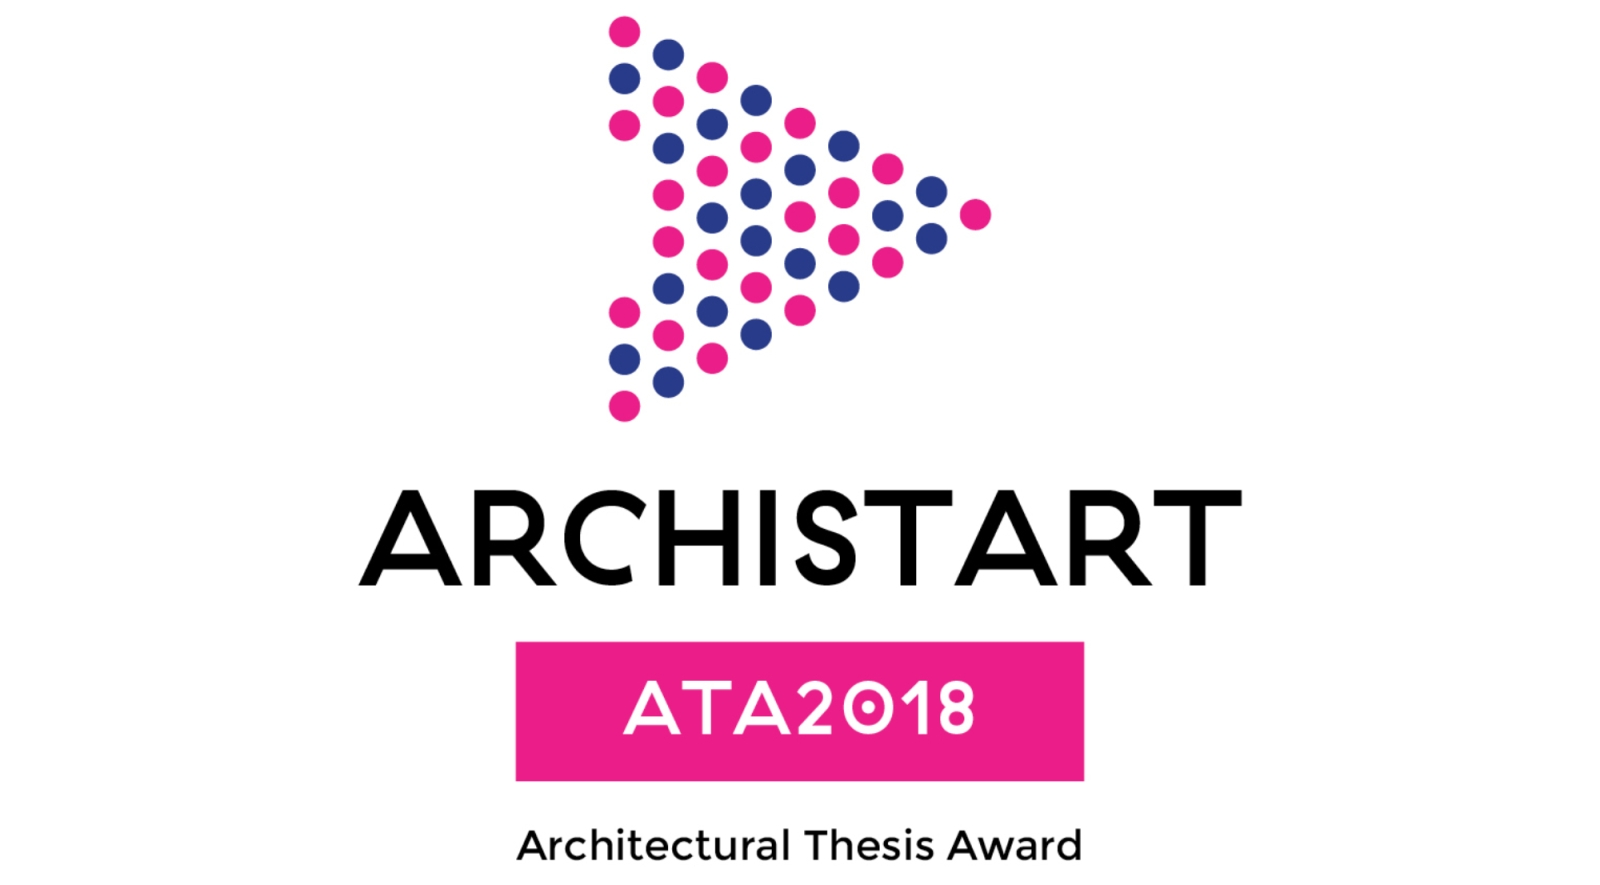 Architectural Thesis Award